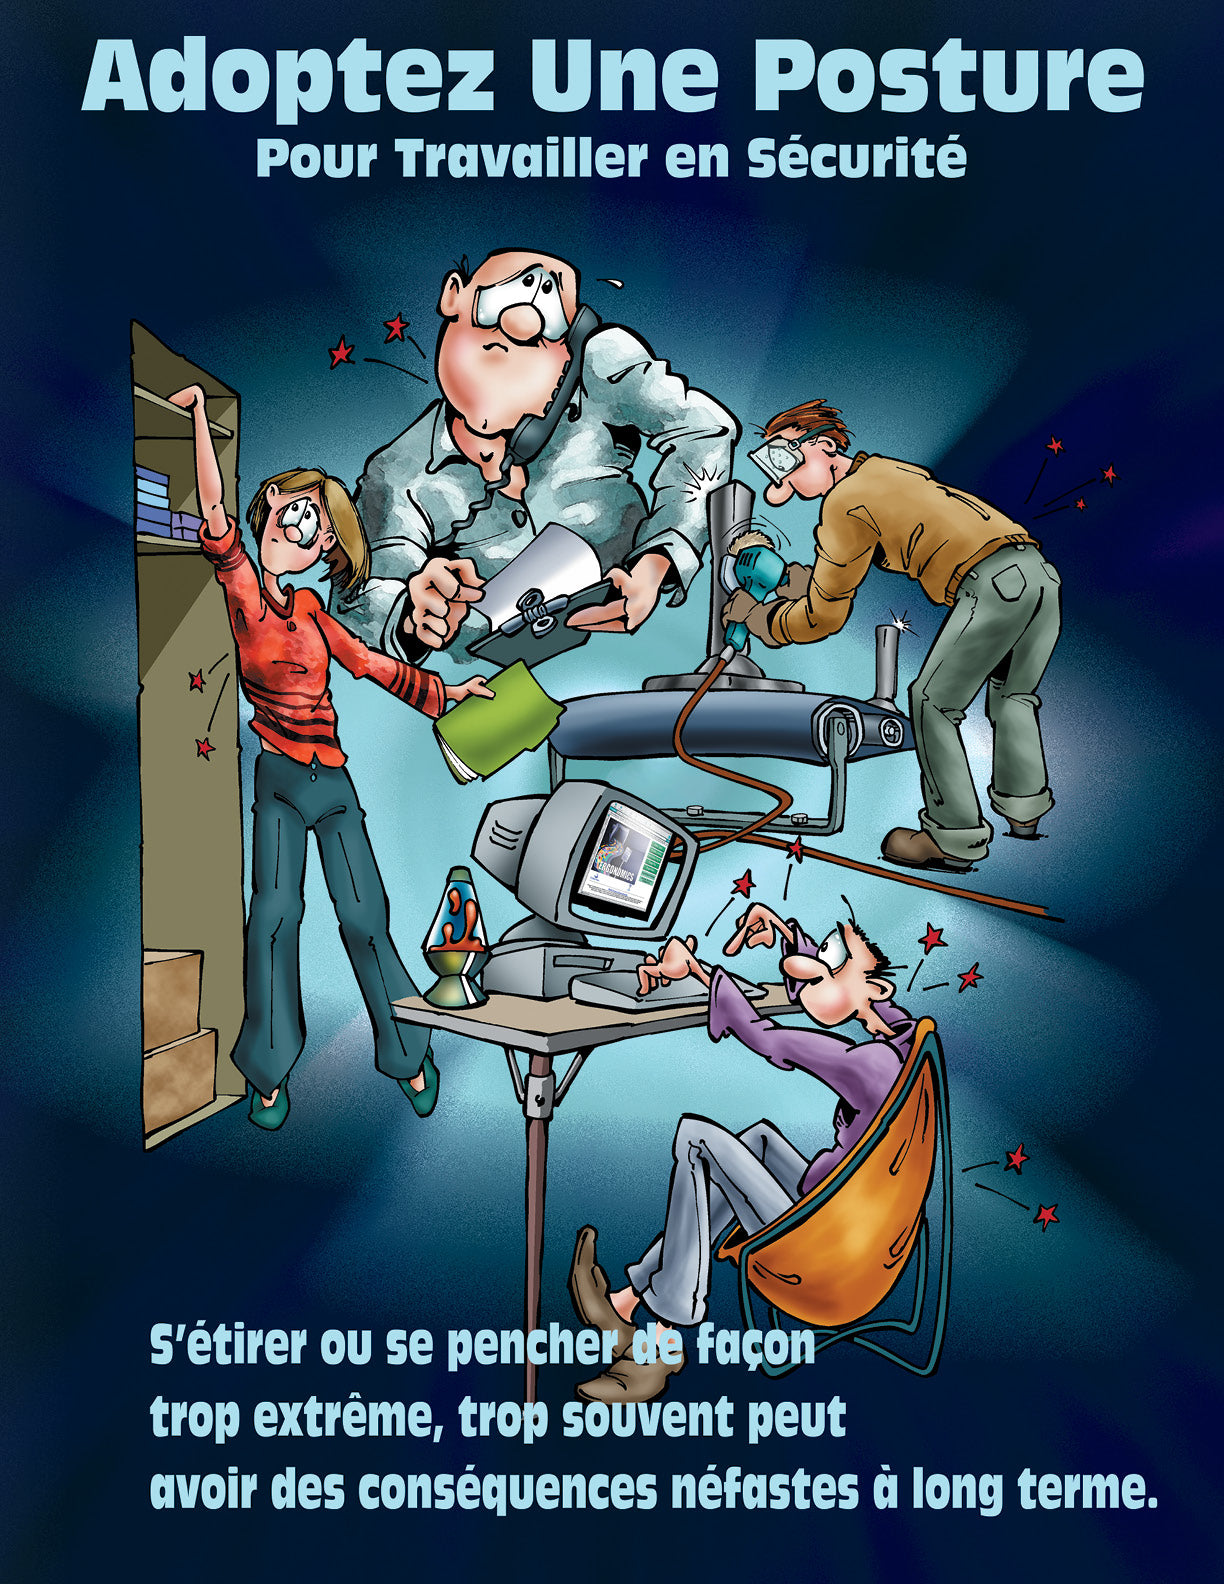 Position Yourself To Work Safely (Cartoon) - French Safety Poster